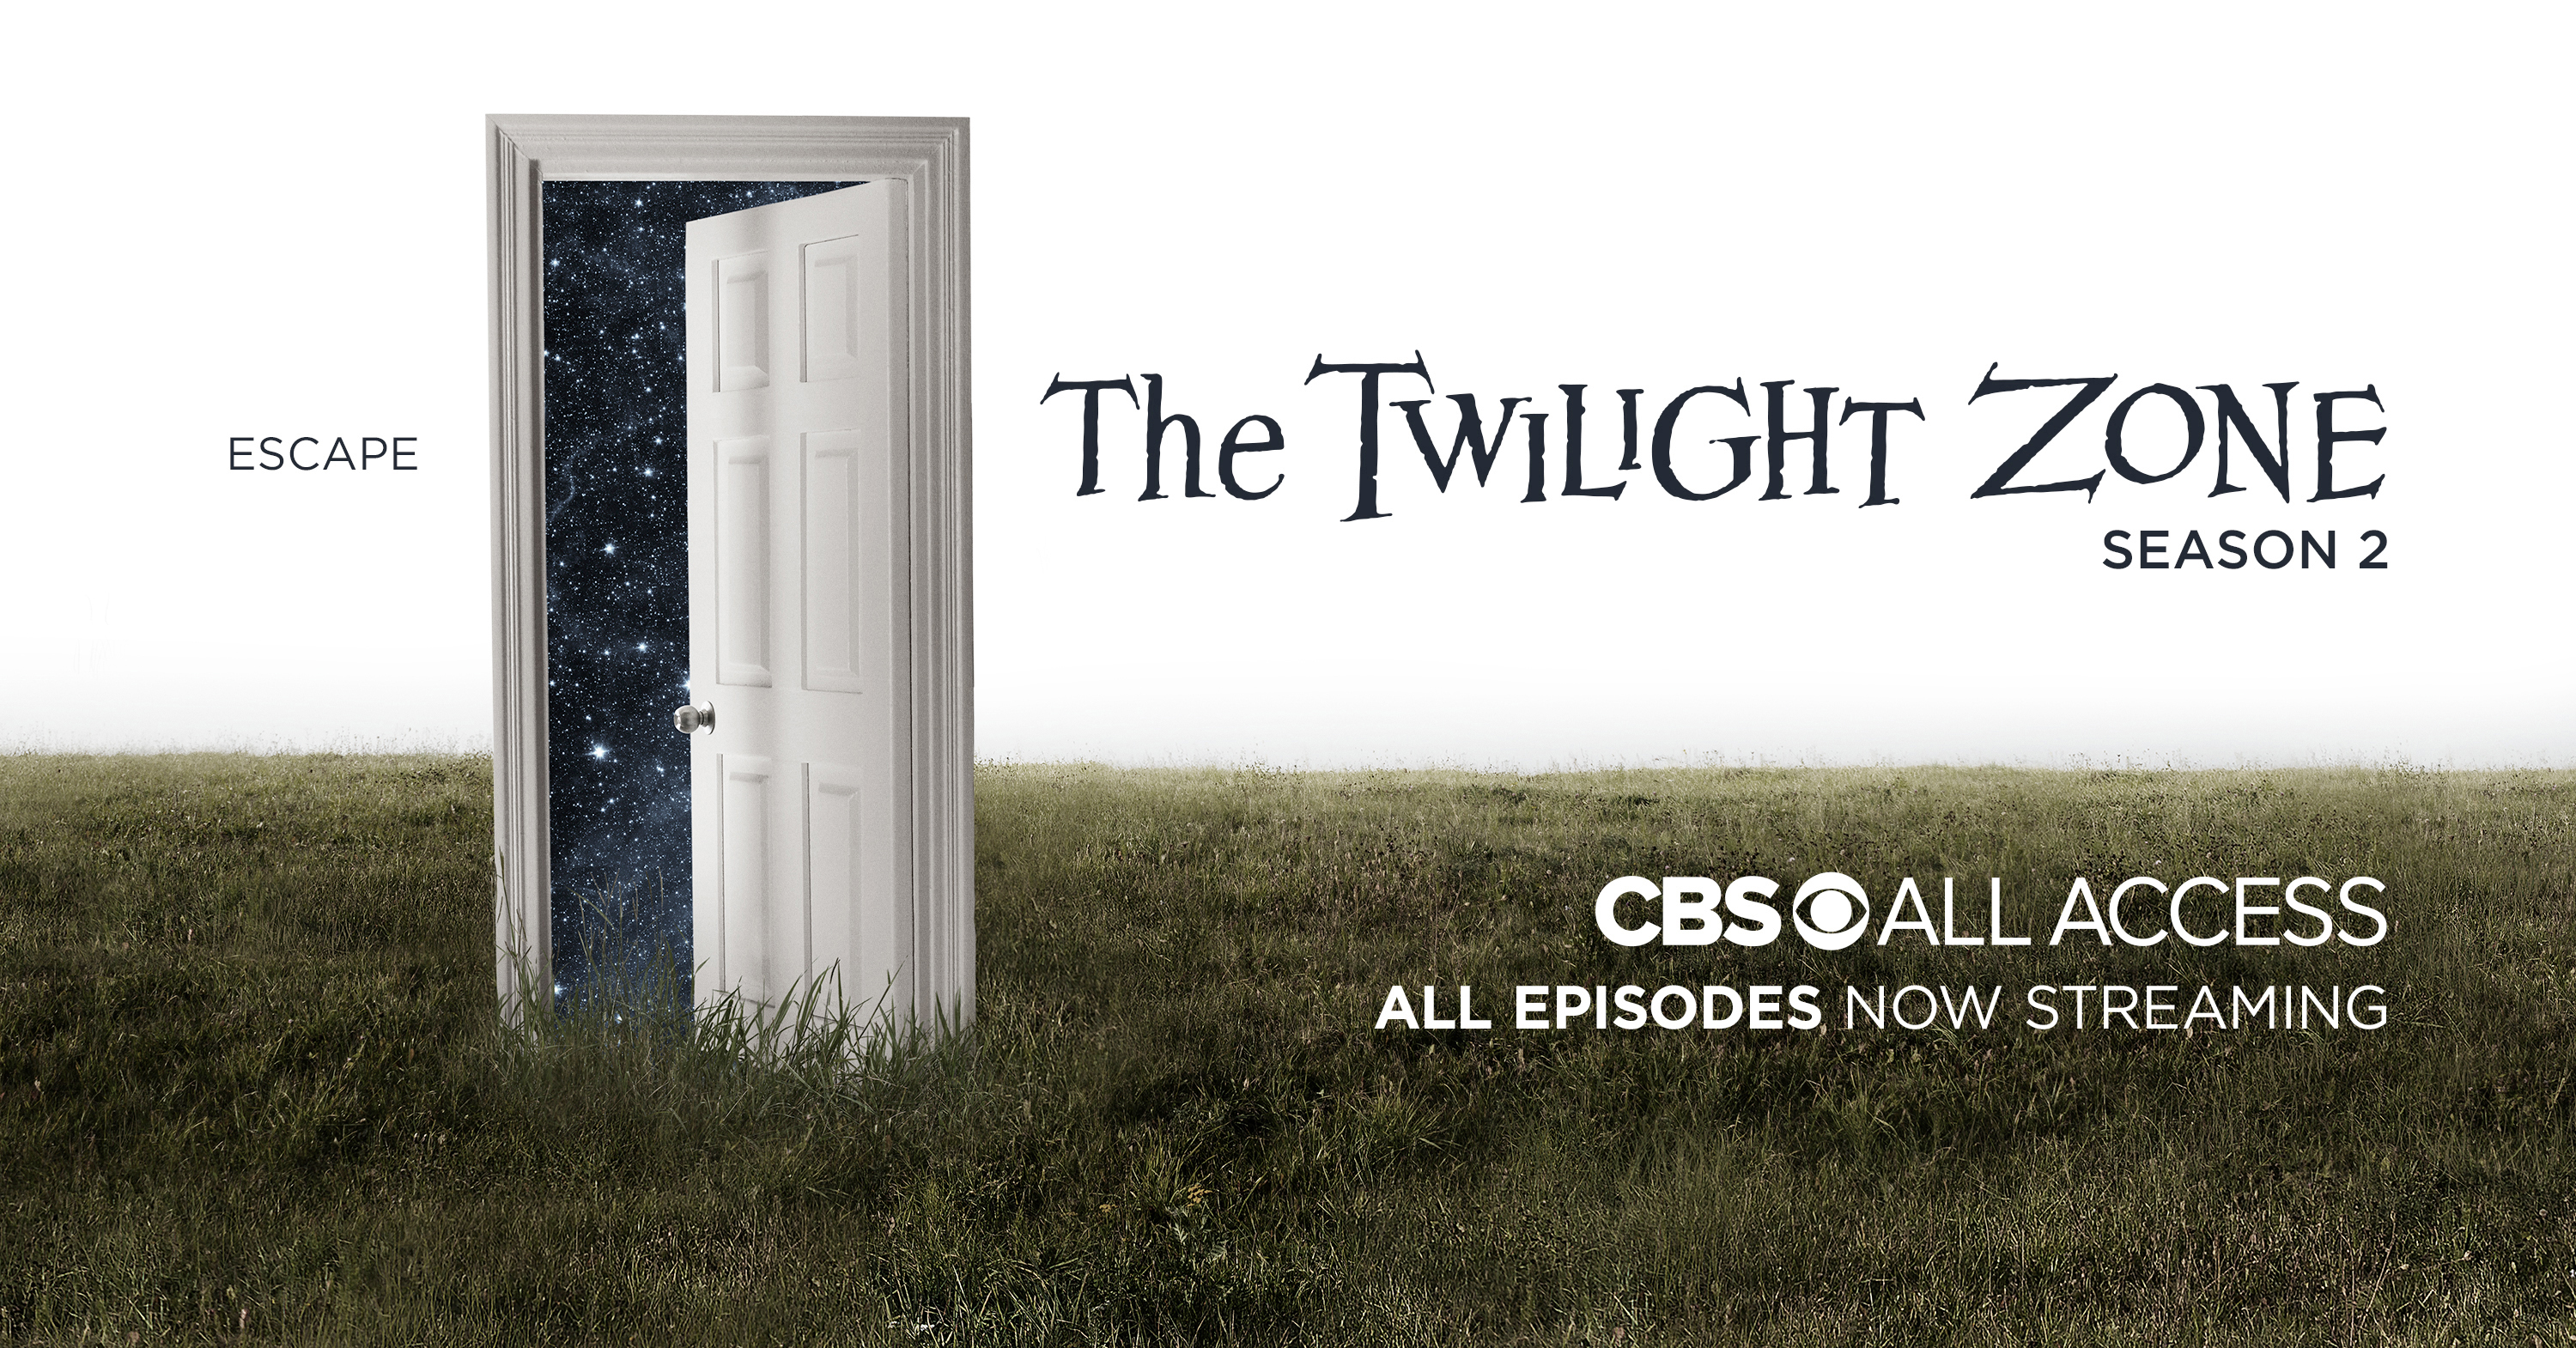 An all-star cast leads viewers into The Twilight Zone Season 2, now available on CBS All Access.